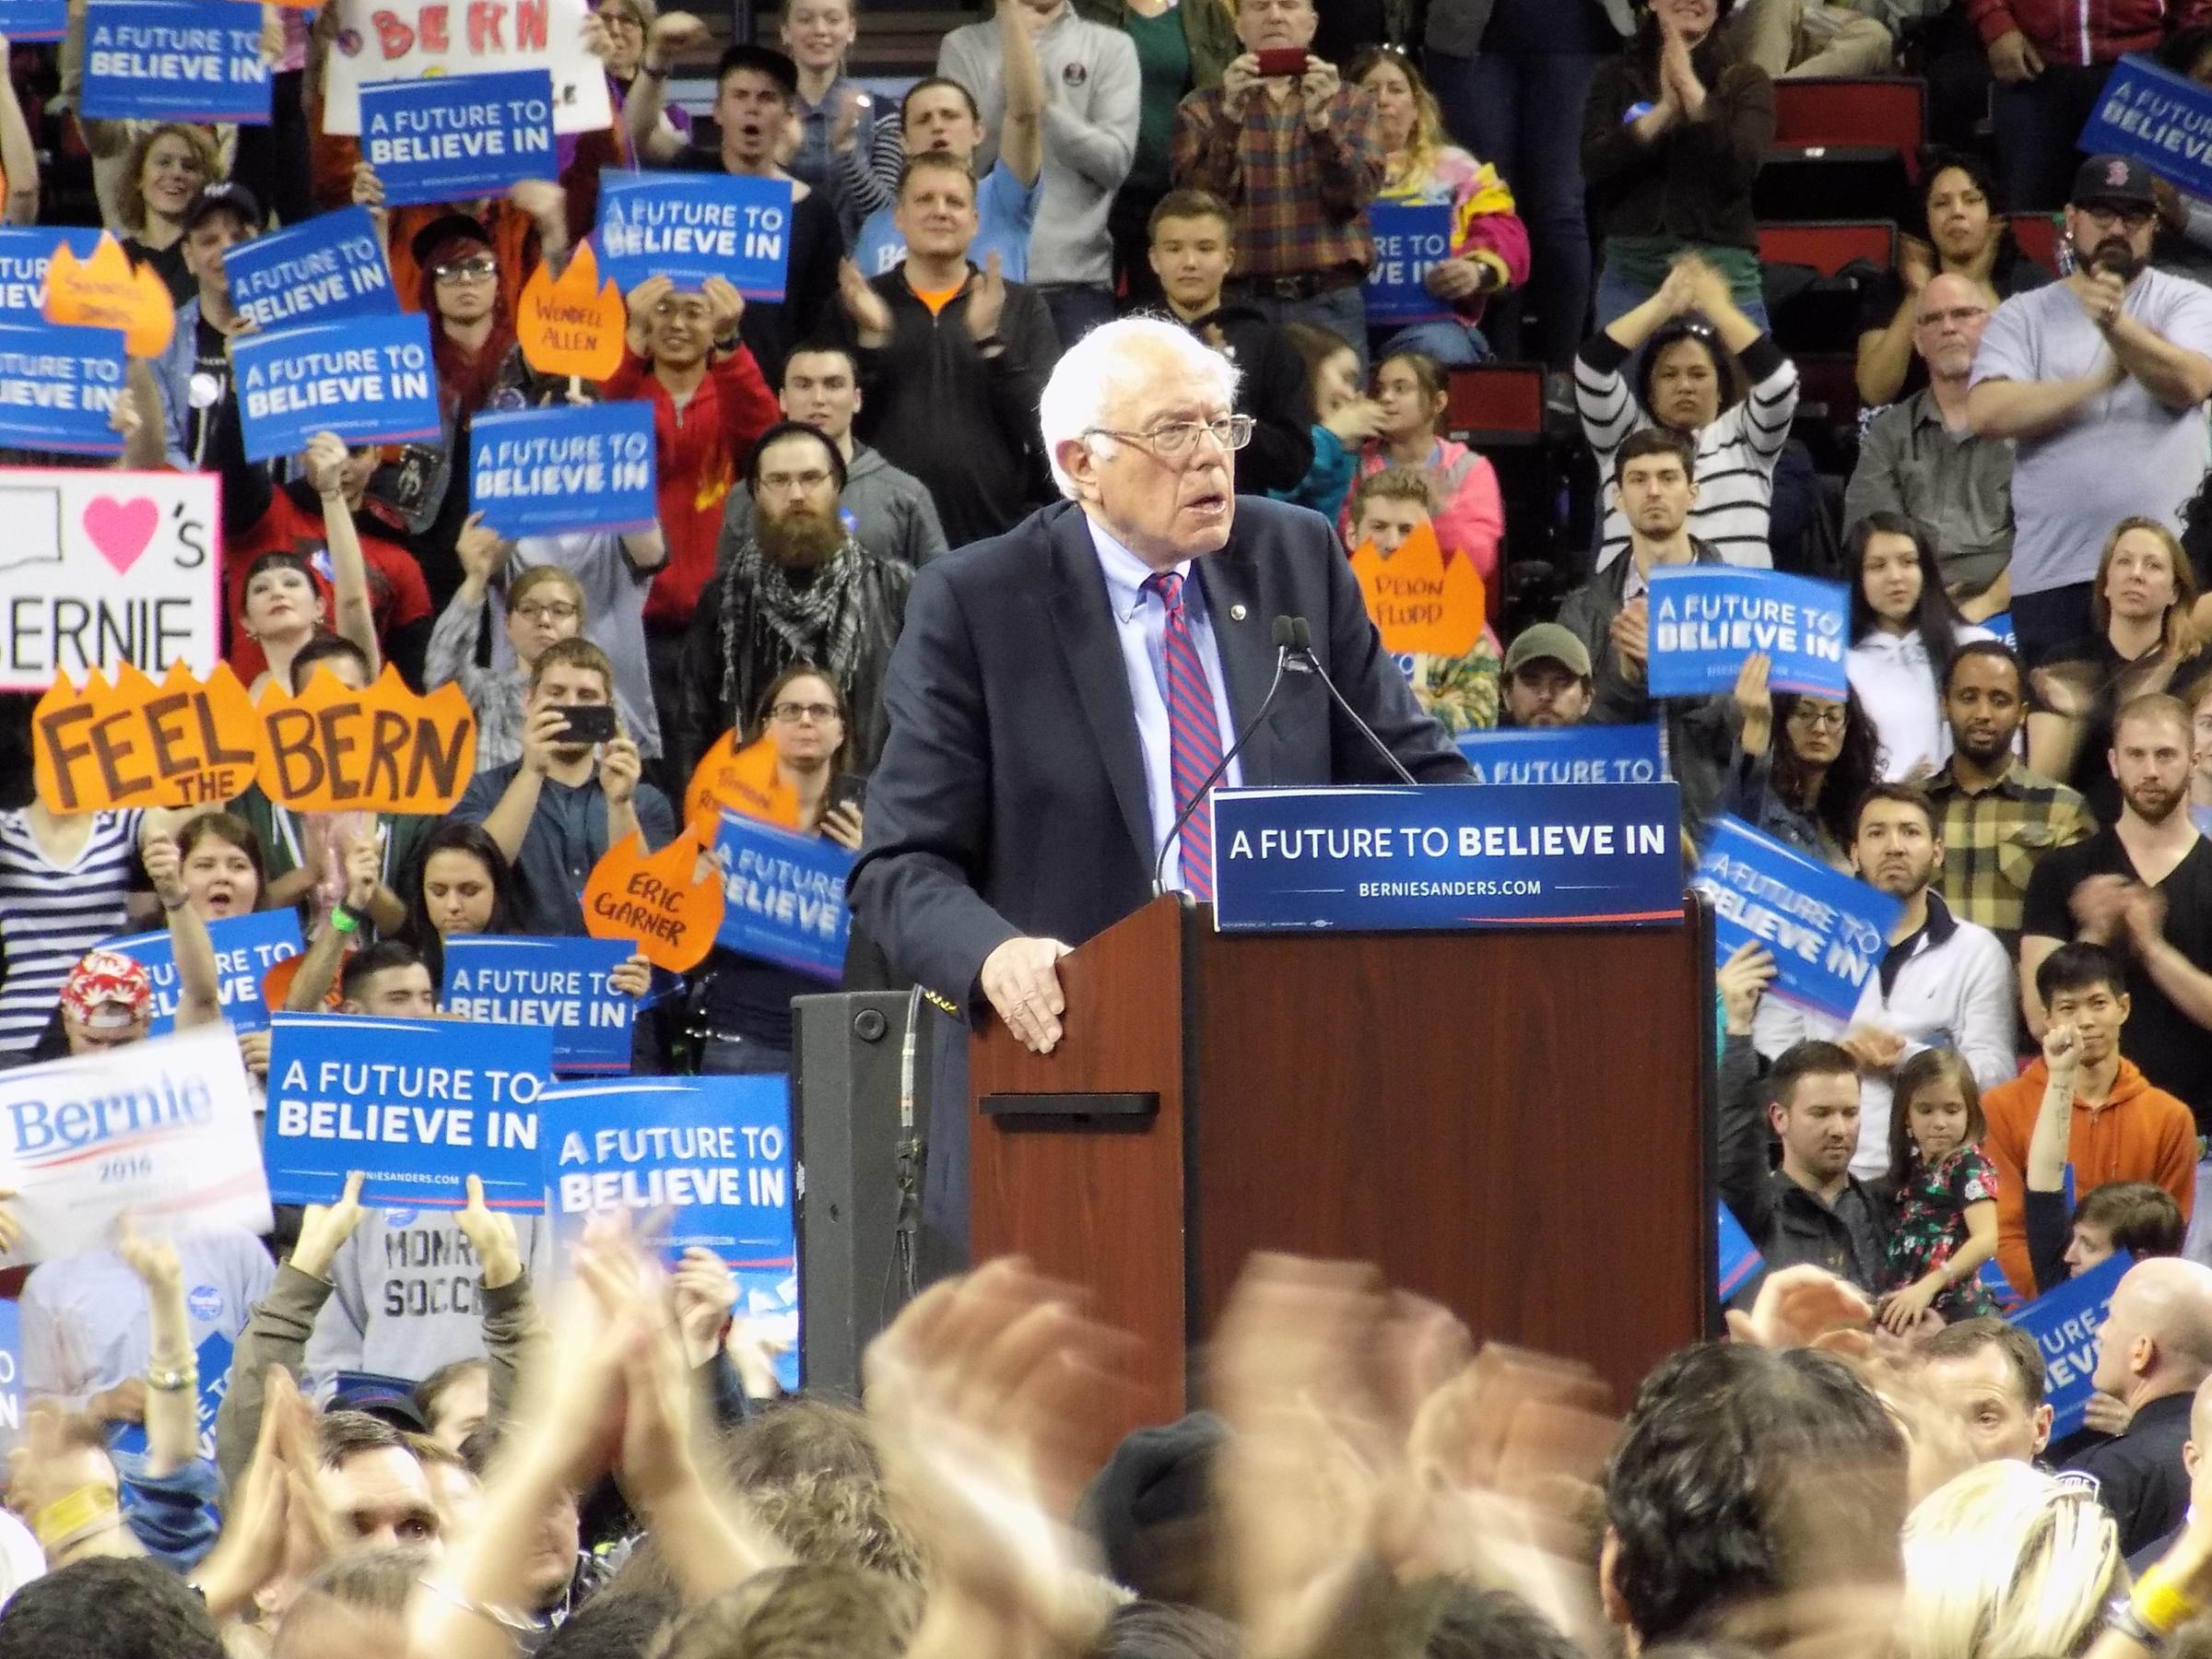 Bernie Sanders returns to Seattle Friday for rally at Safeco Field